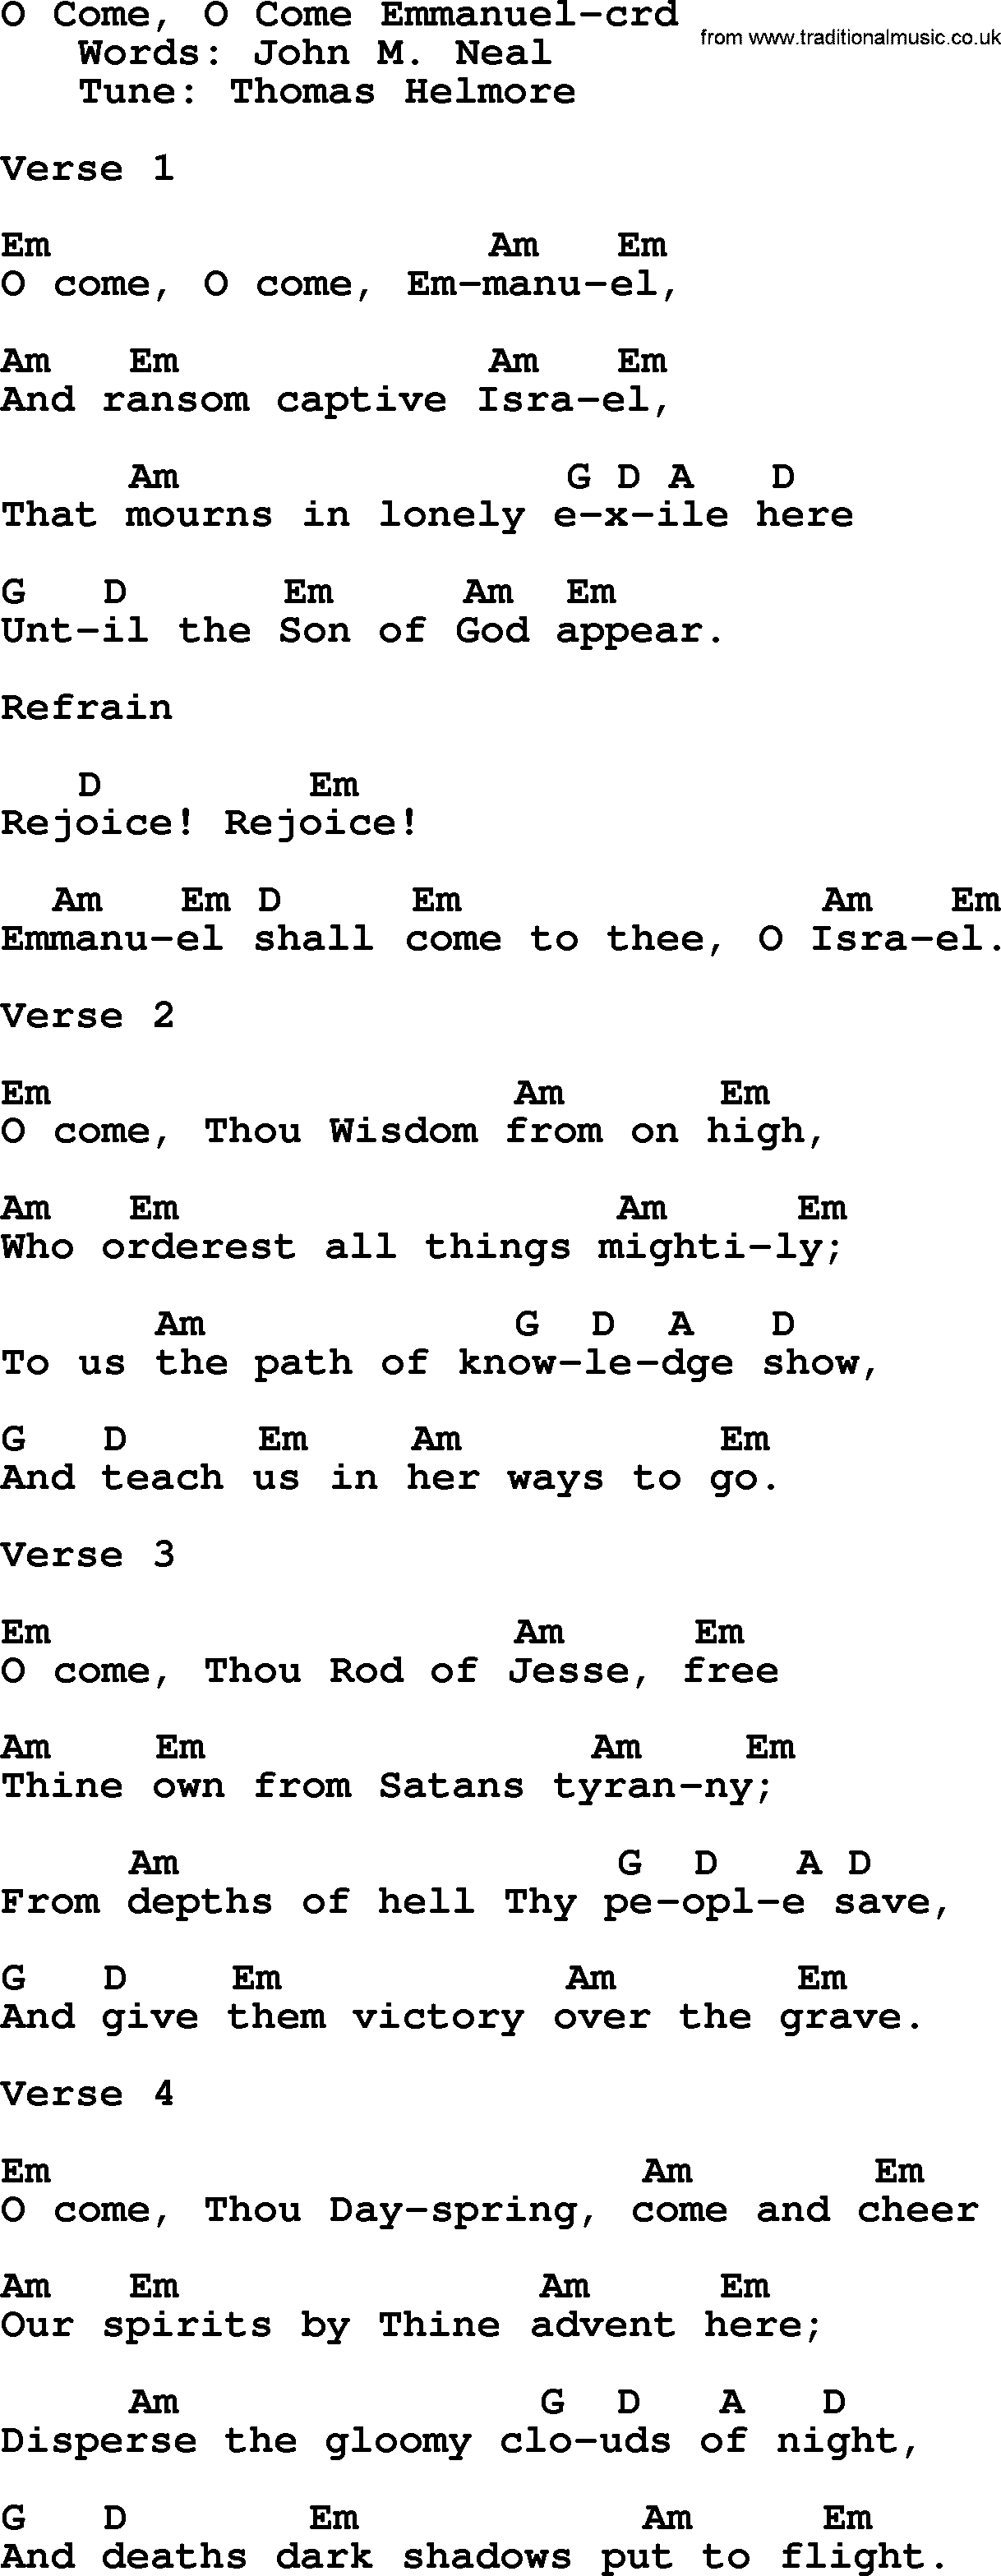 Top 500 Hymn O Come O Come Emmanuel Lyrics Chords And Pdf